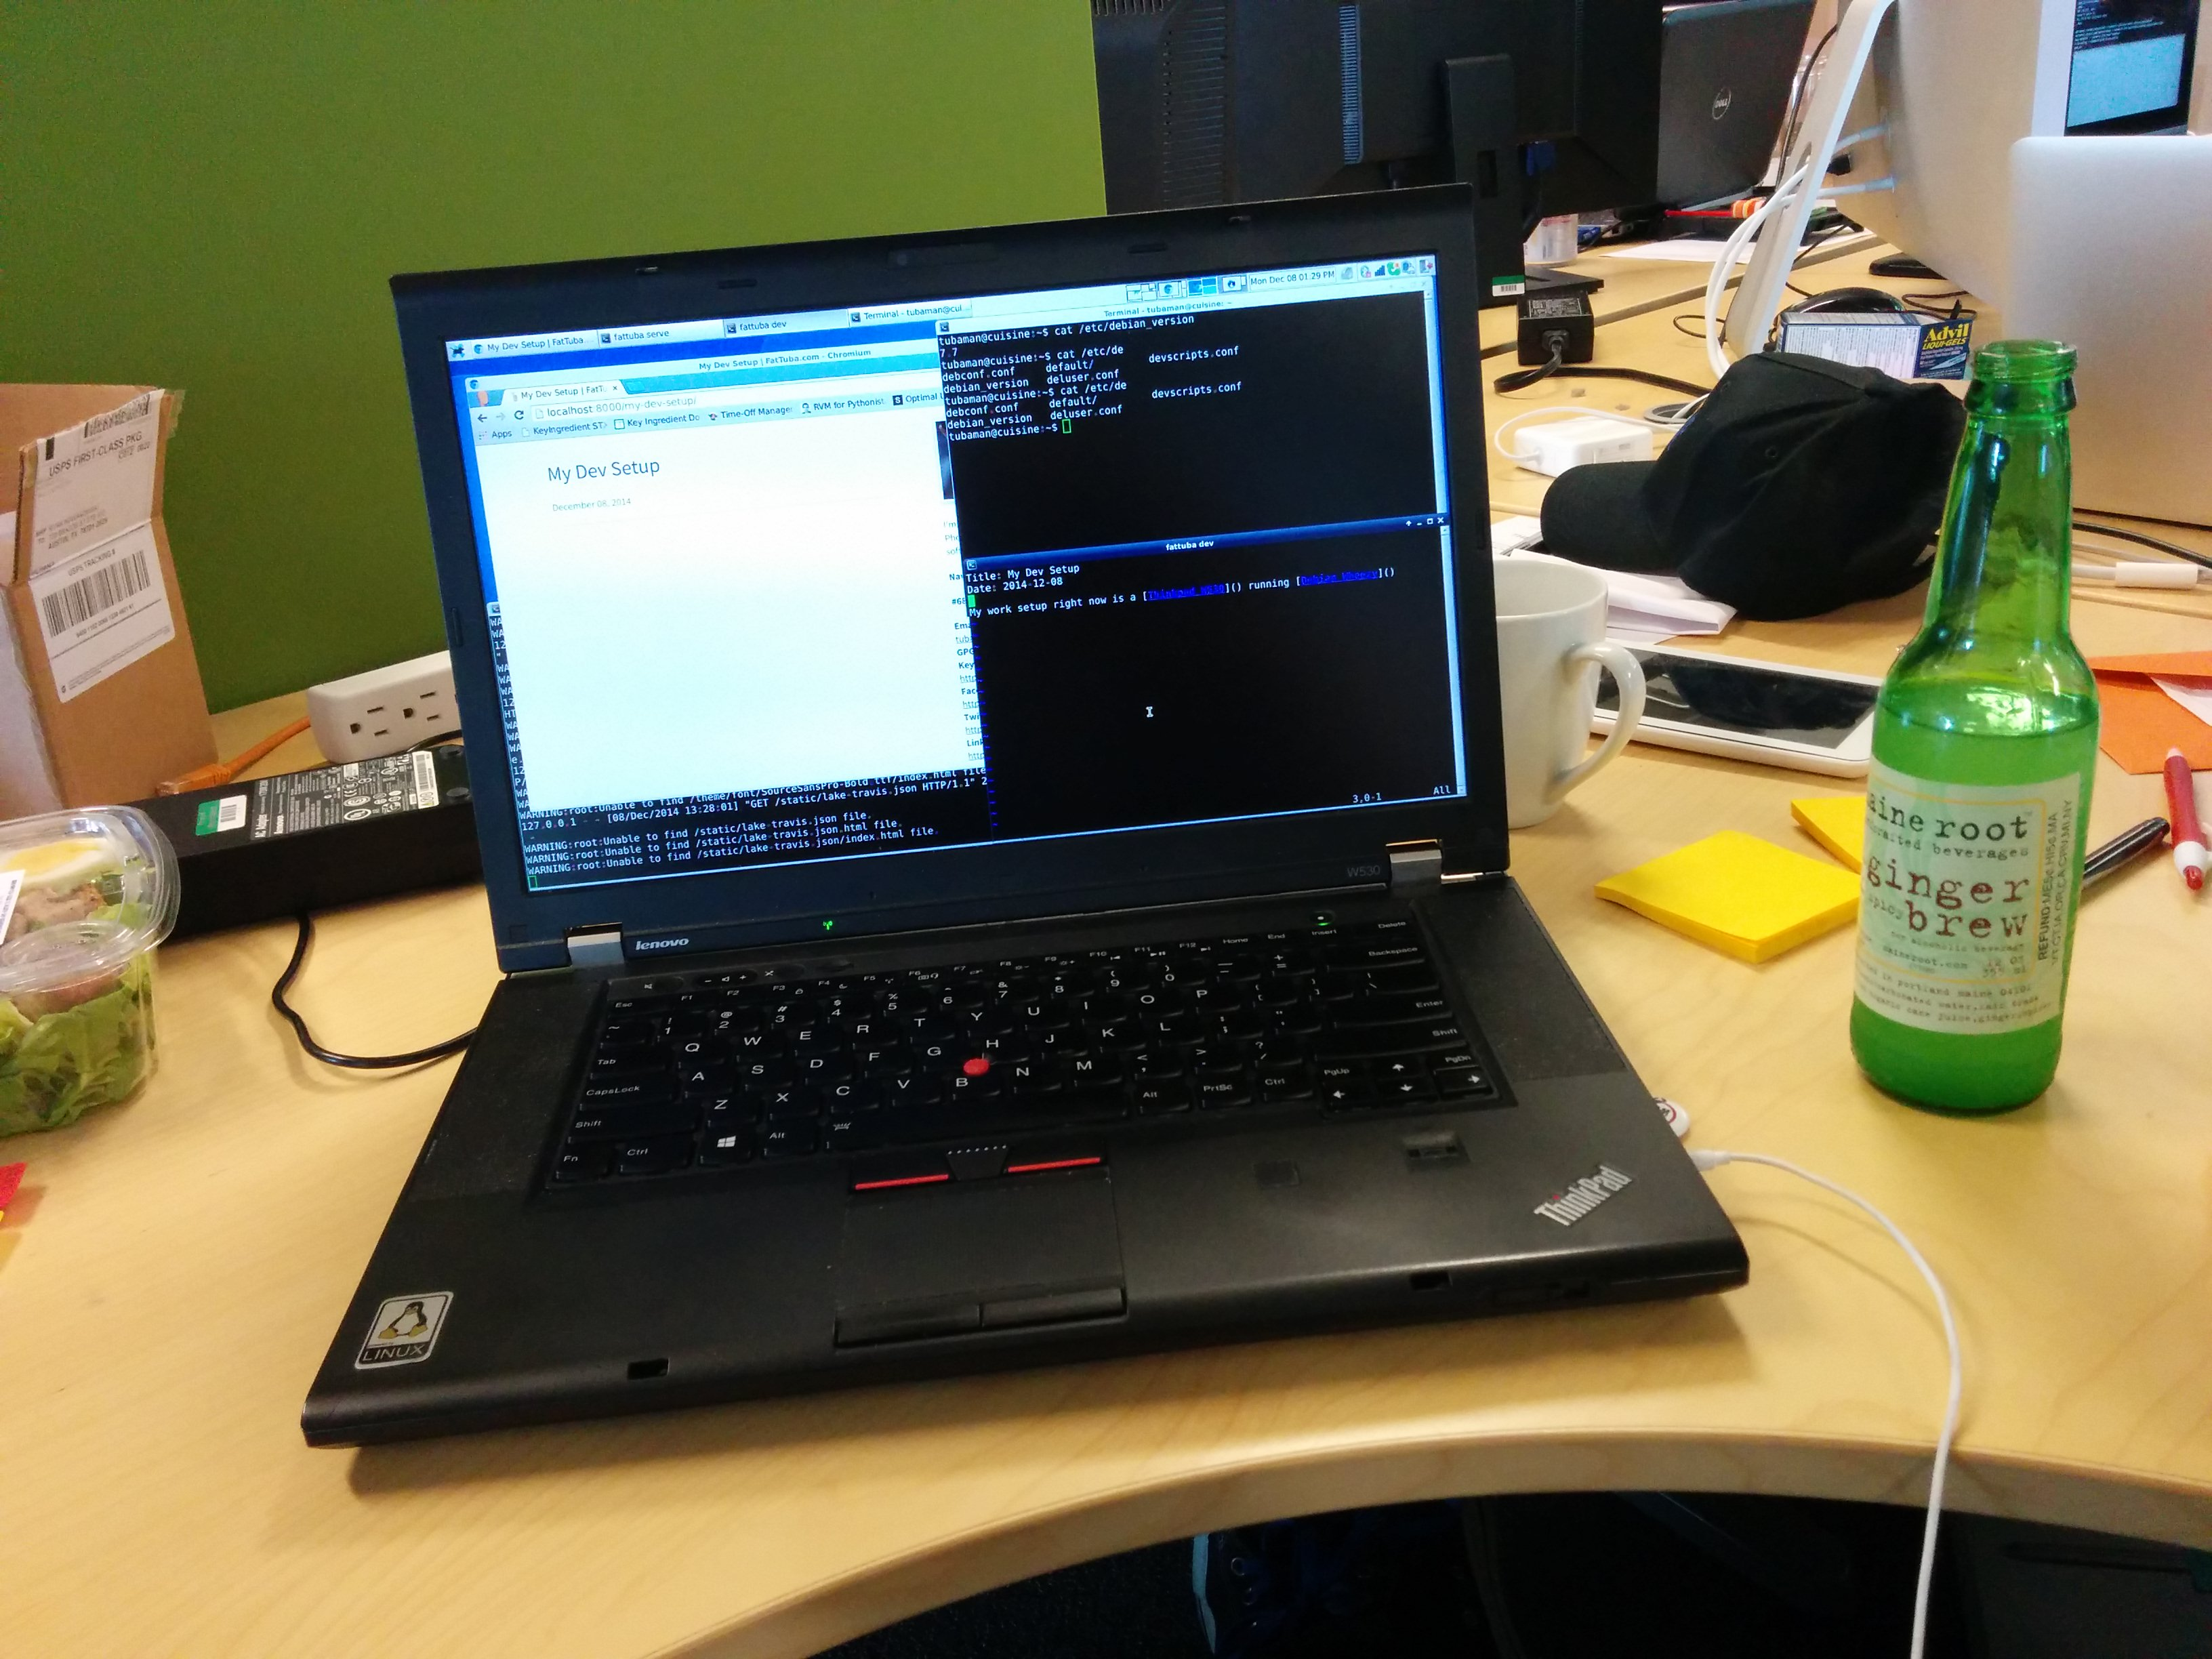 Thinkpad running Debian Wheezy